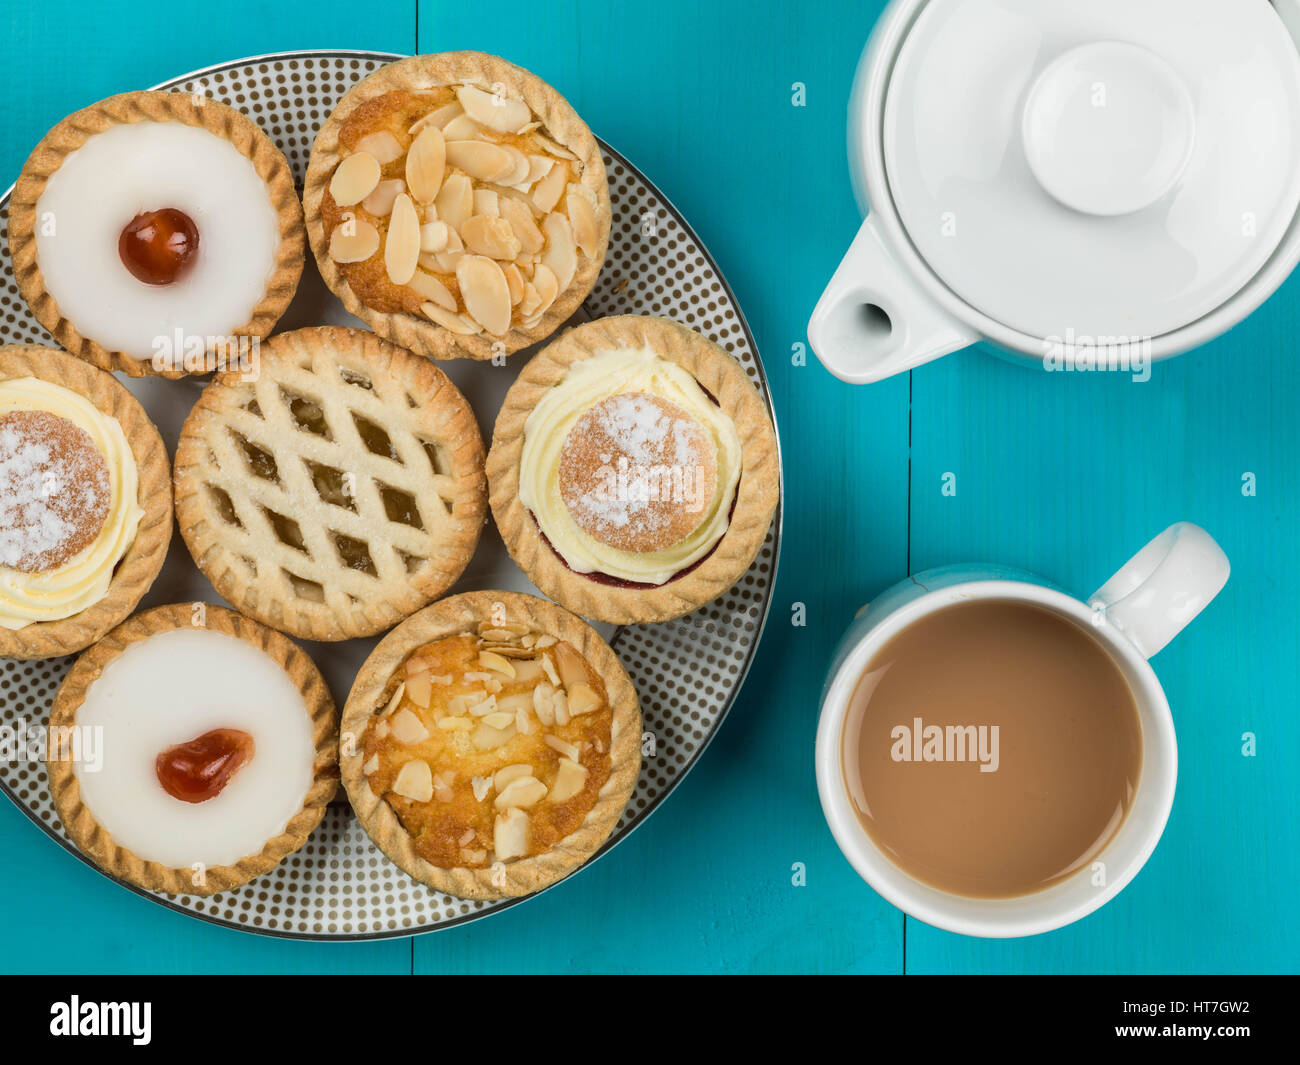 Plate of Assorted Individual Cakes or Tarts With a Pot of Tea Against a Blue Background - Stock Image